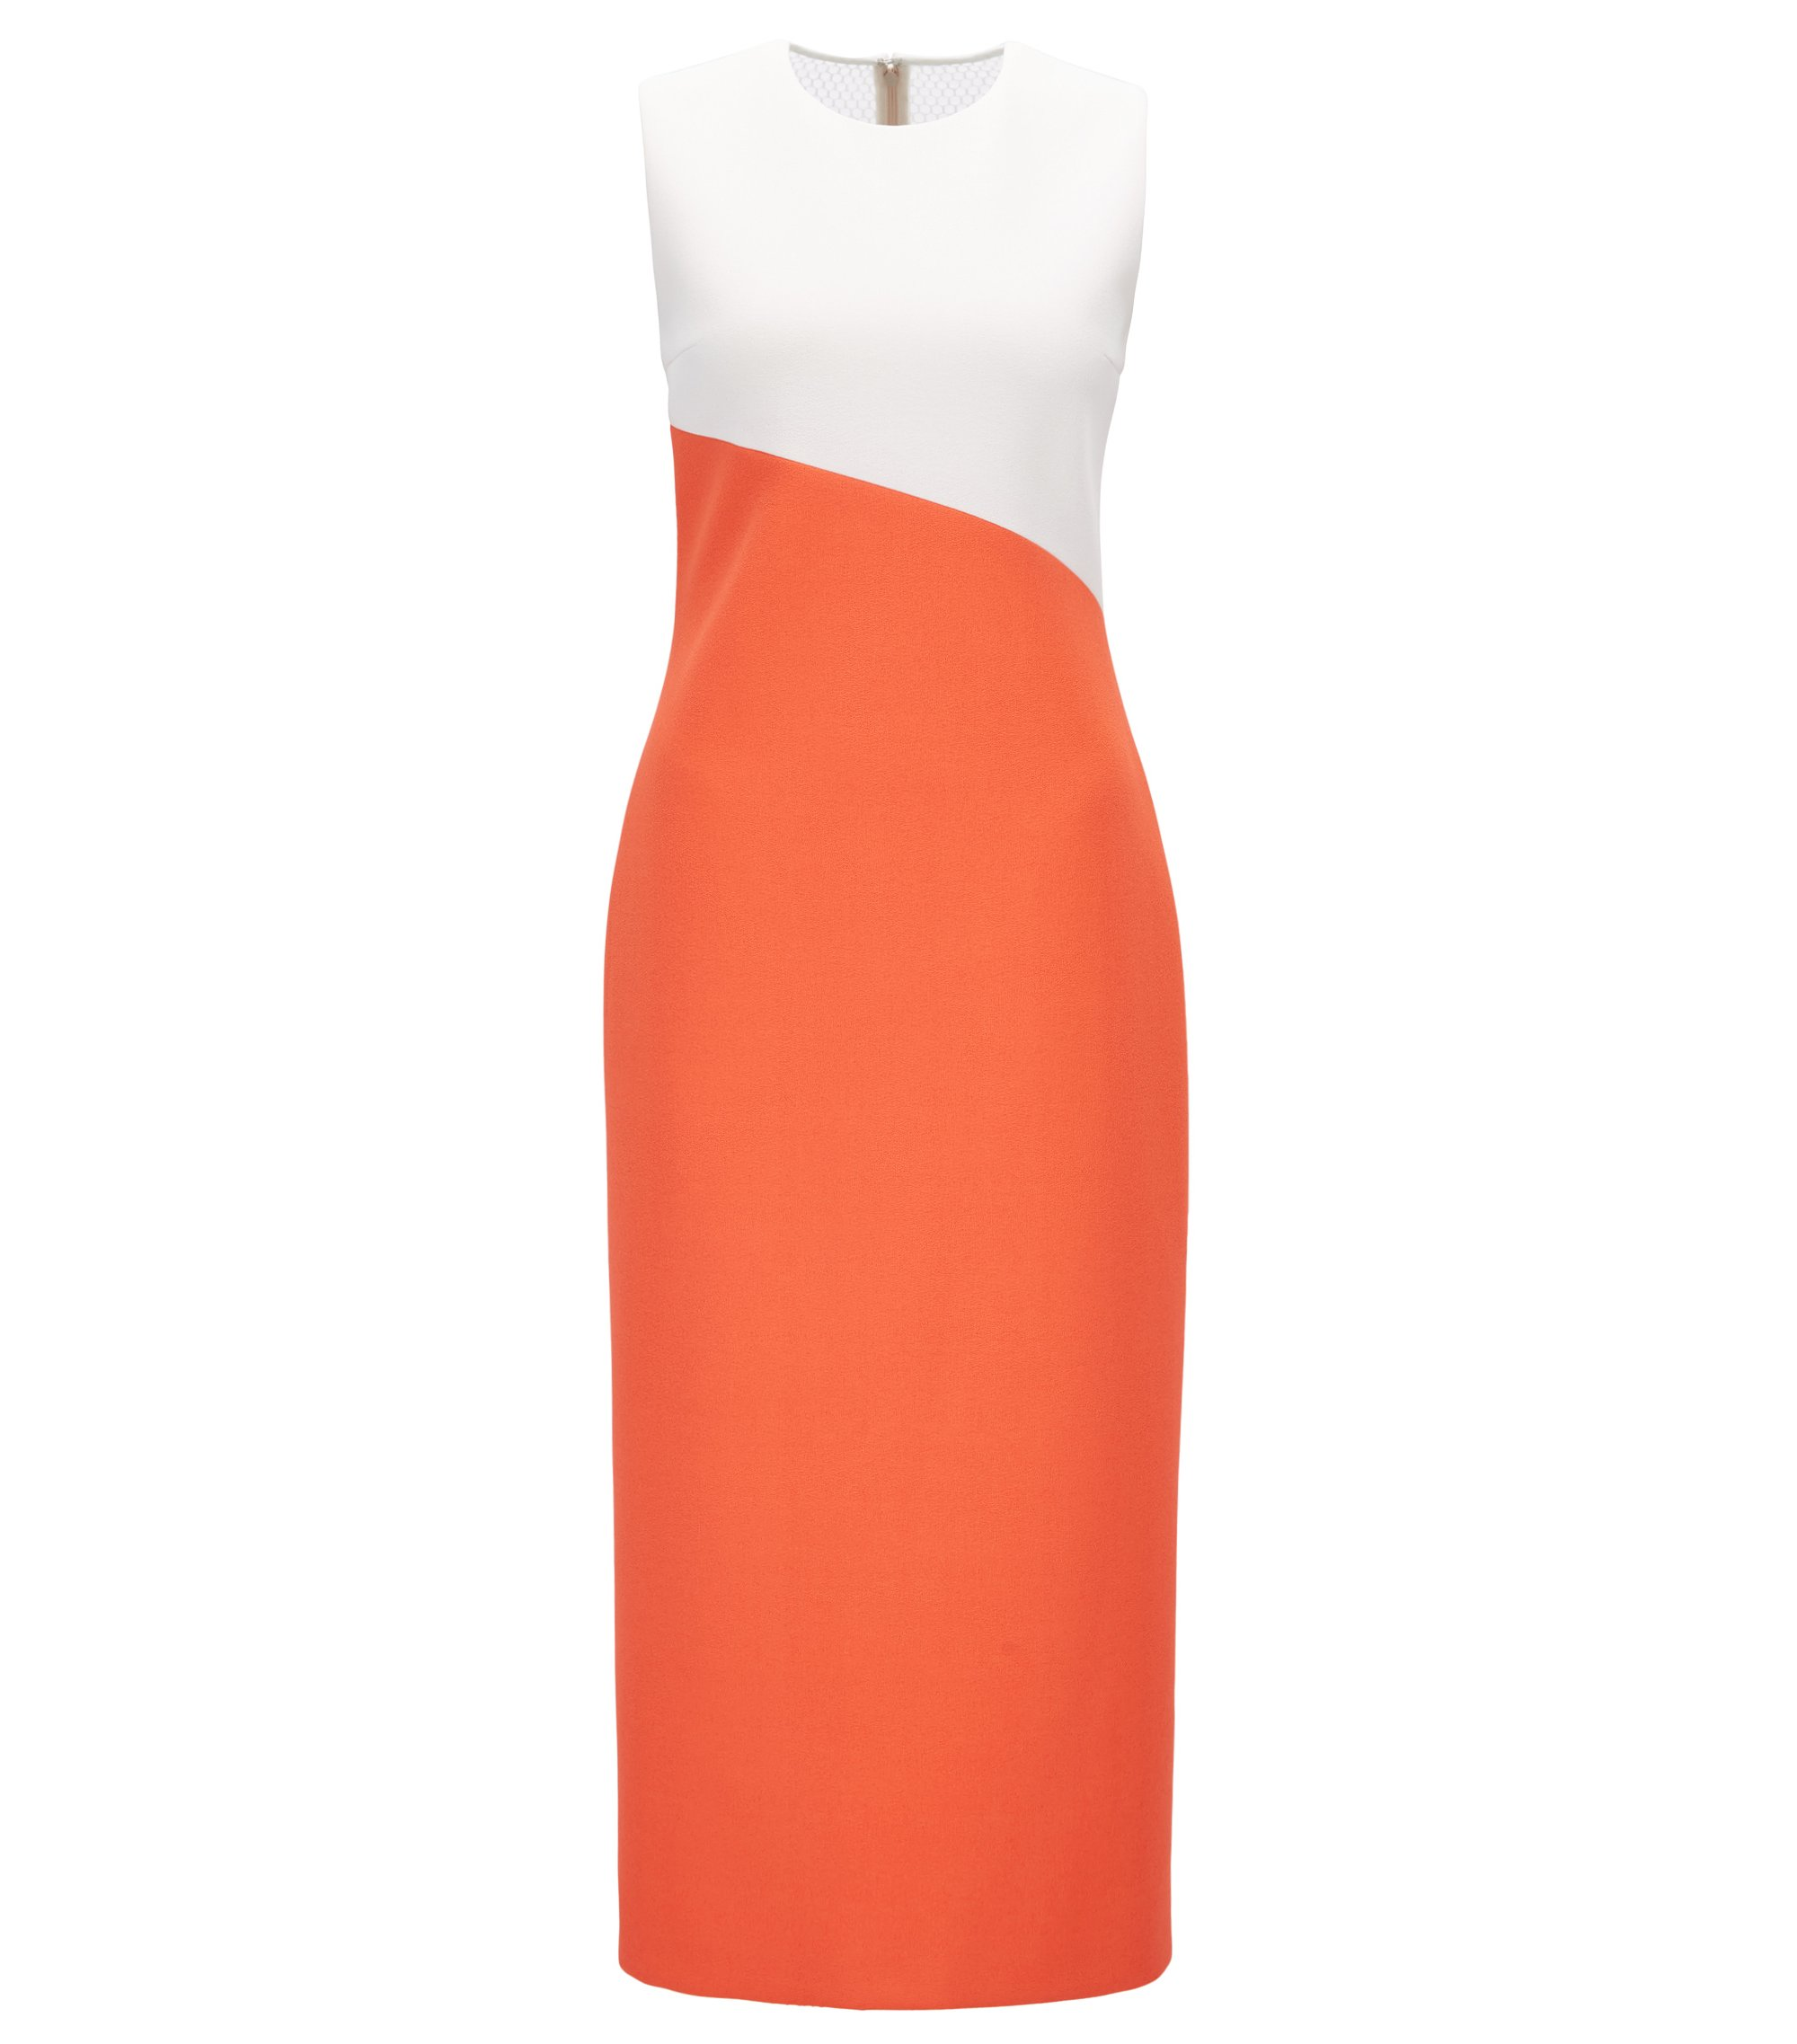 Gallery Collection Crepe Midi Sheath Dress | Dalernira GC, Orange